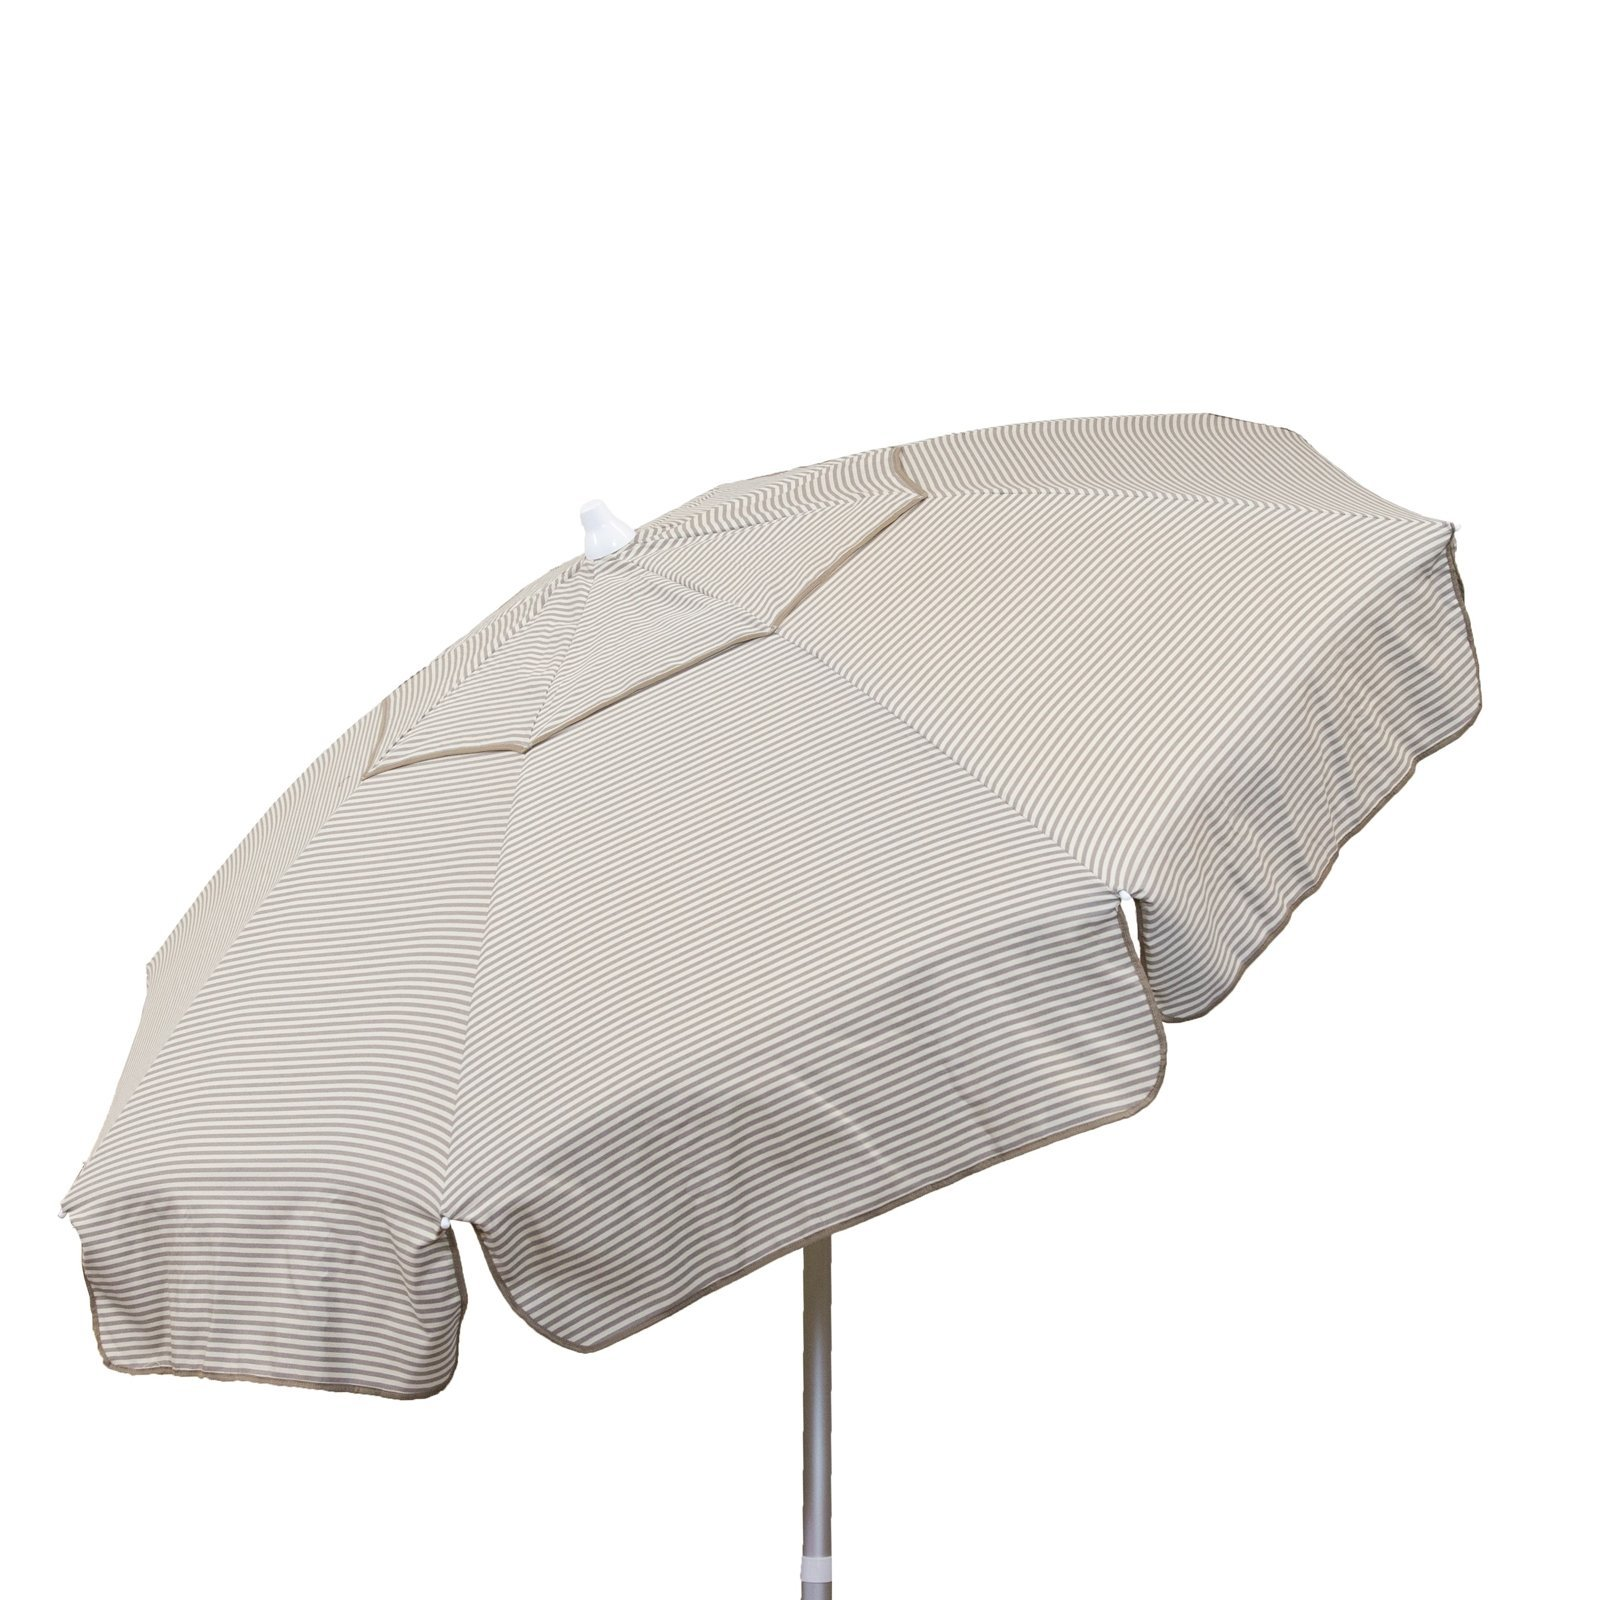 Euro 6 foot Umbrella Acrylic Thin Stripes Vanilla Taupe - Beach Pole